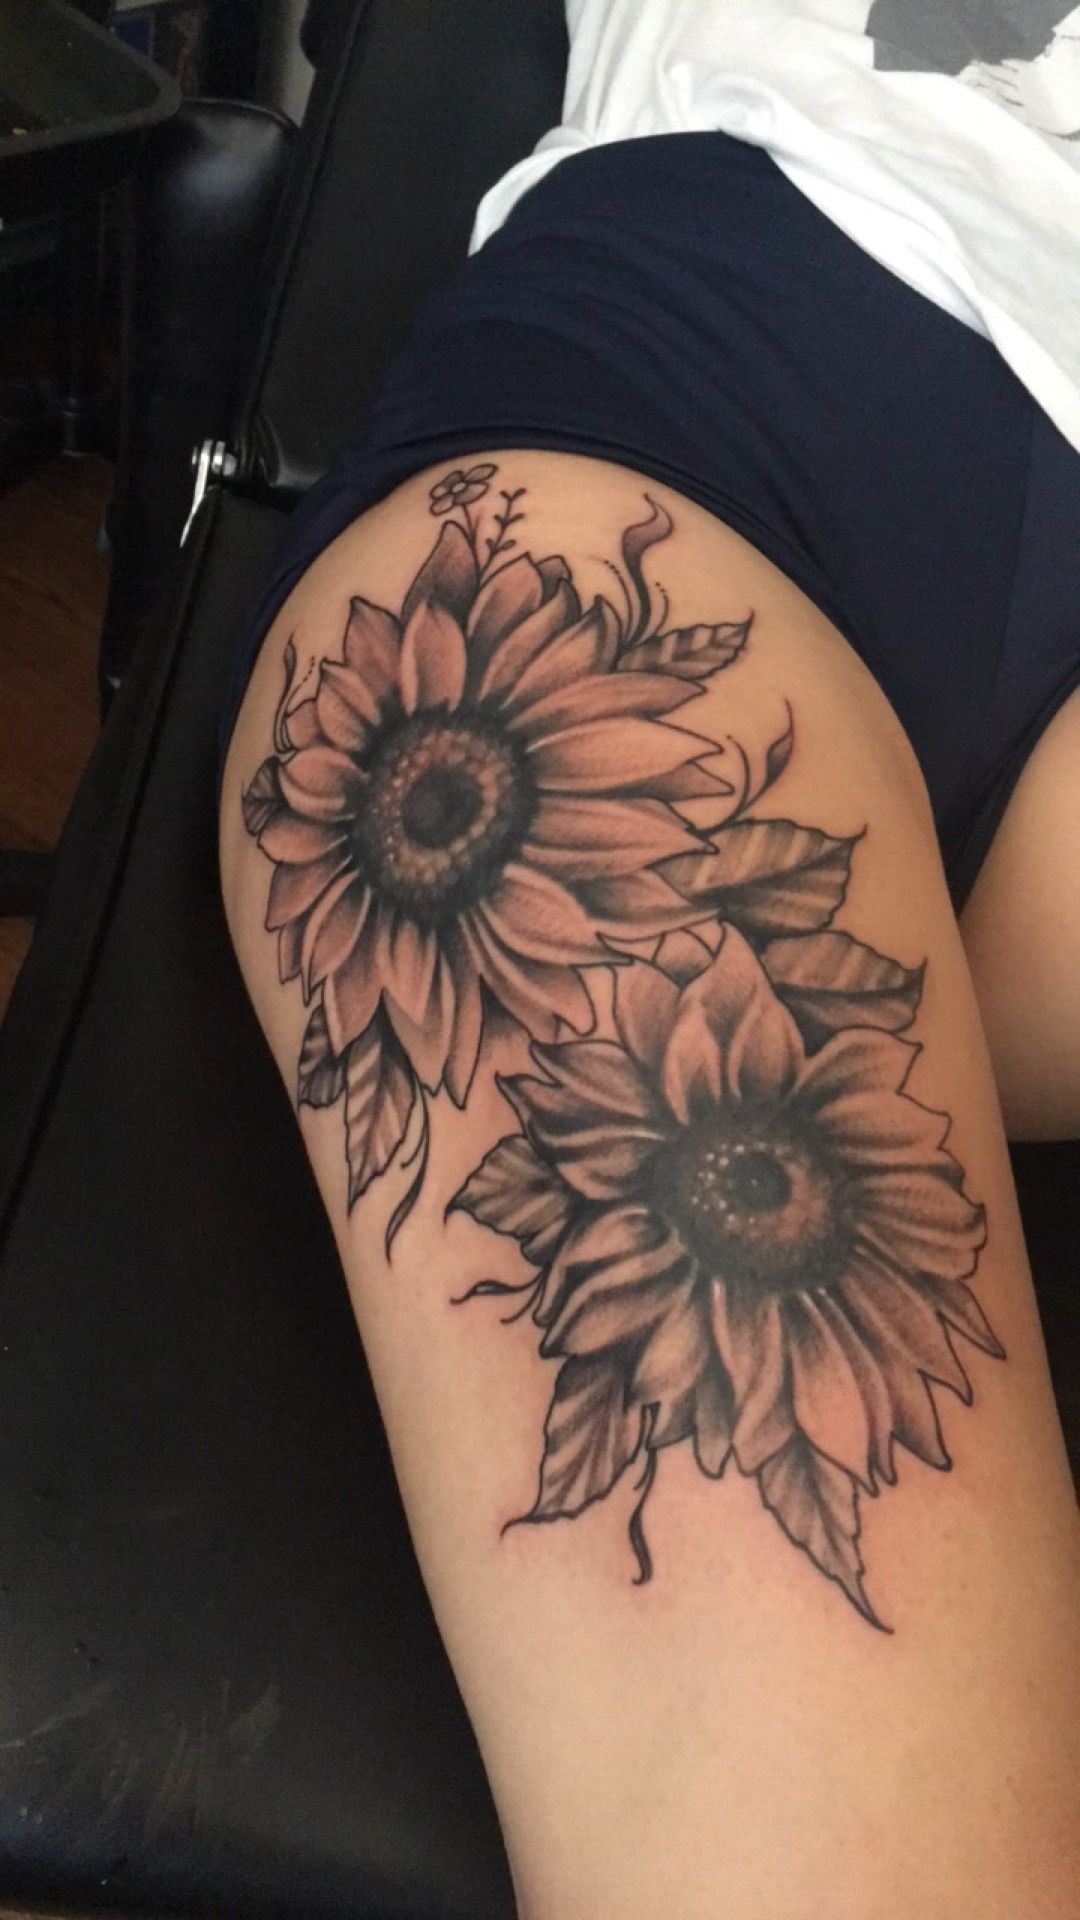 My Own Creation Of Sunflowers Theigh Tattoos Thigh Tattoos Women Sunflower Tattoo Thigh